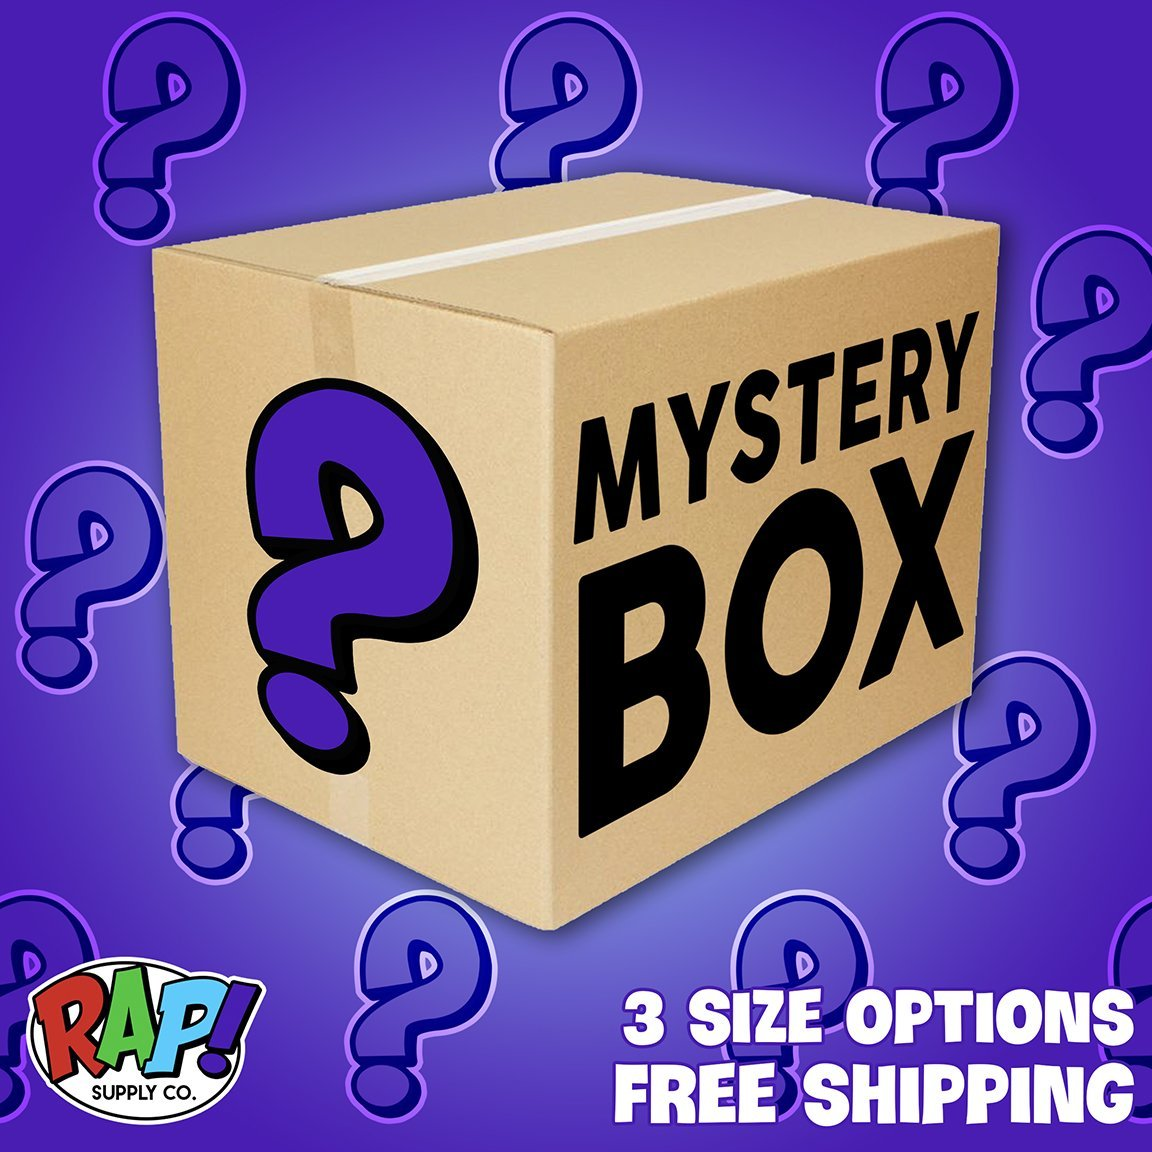 THE MYSTERY BOX - Rap Supply Co